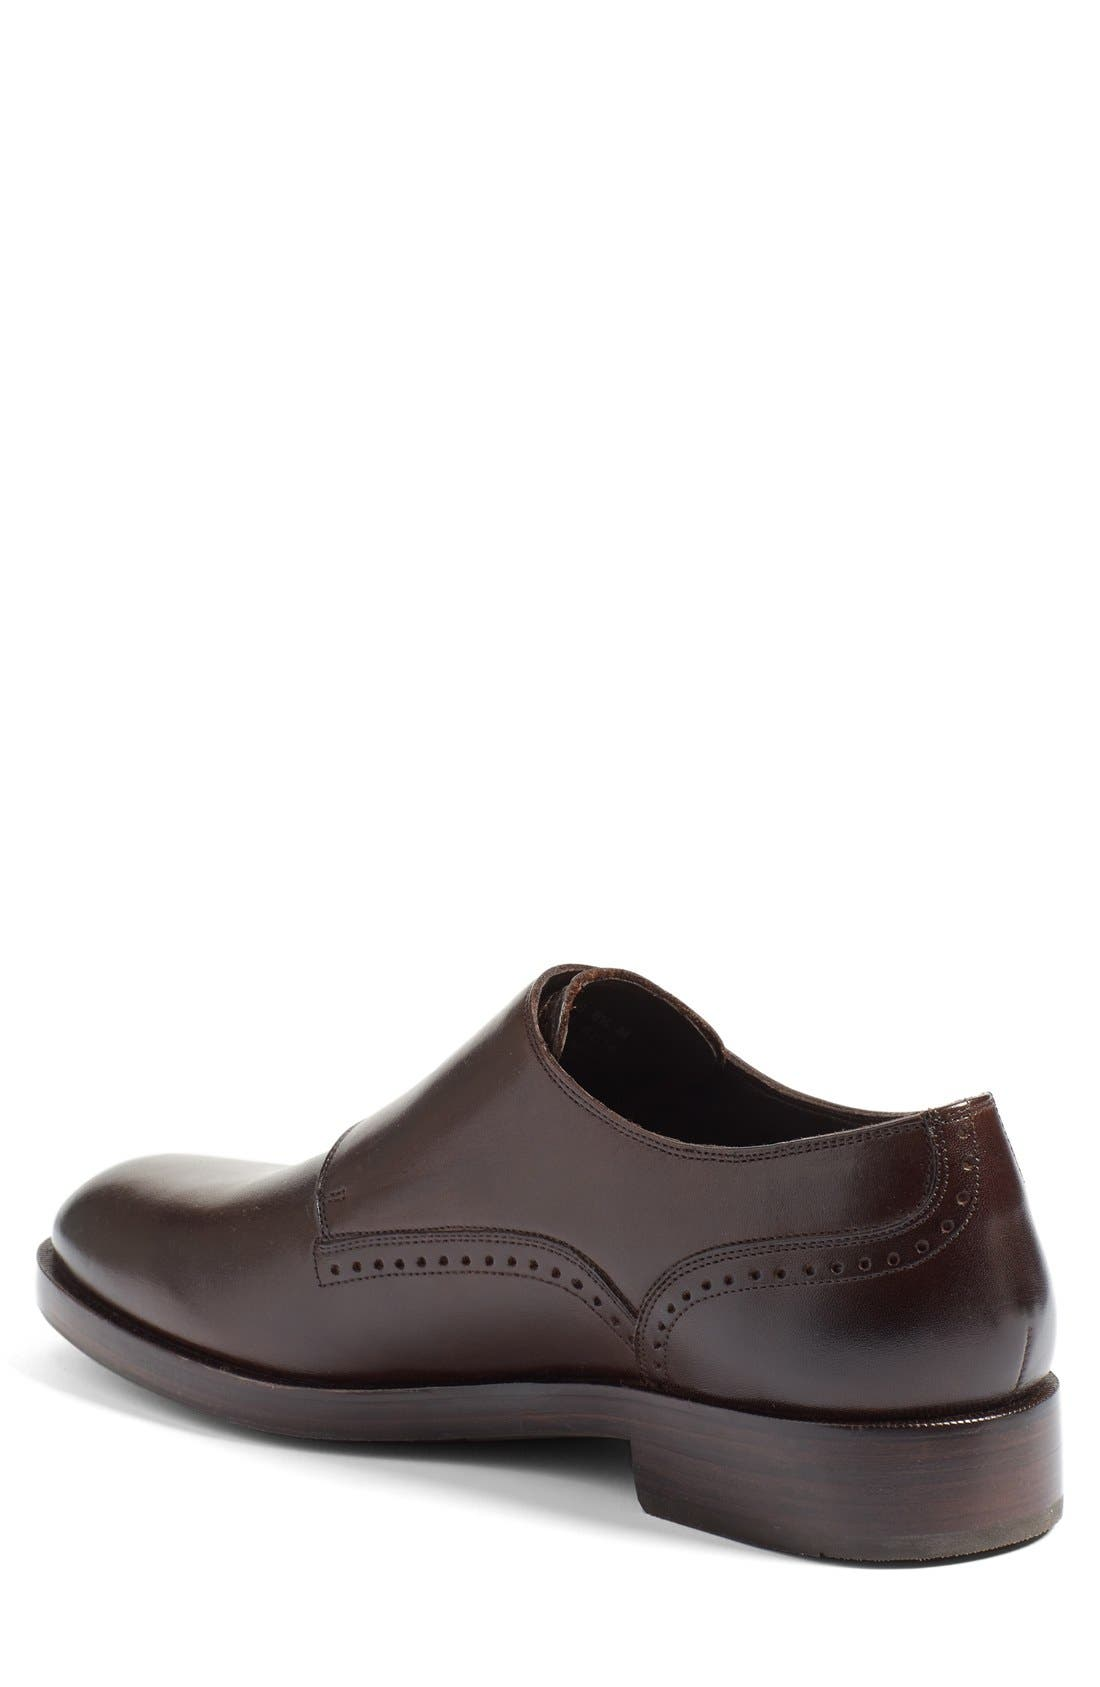 'Harrison' Double Monk Strap Shoe,                             Alternate thumbnail 2, color,                             205